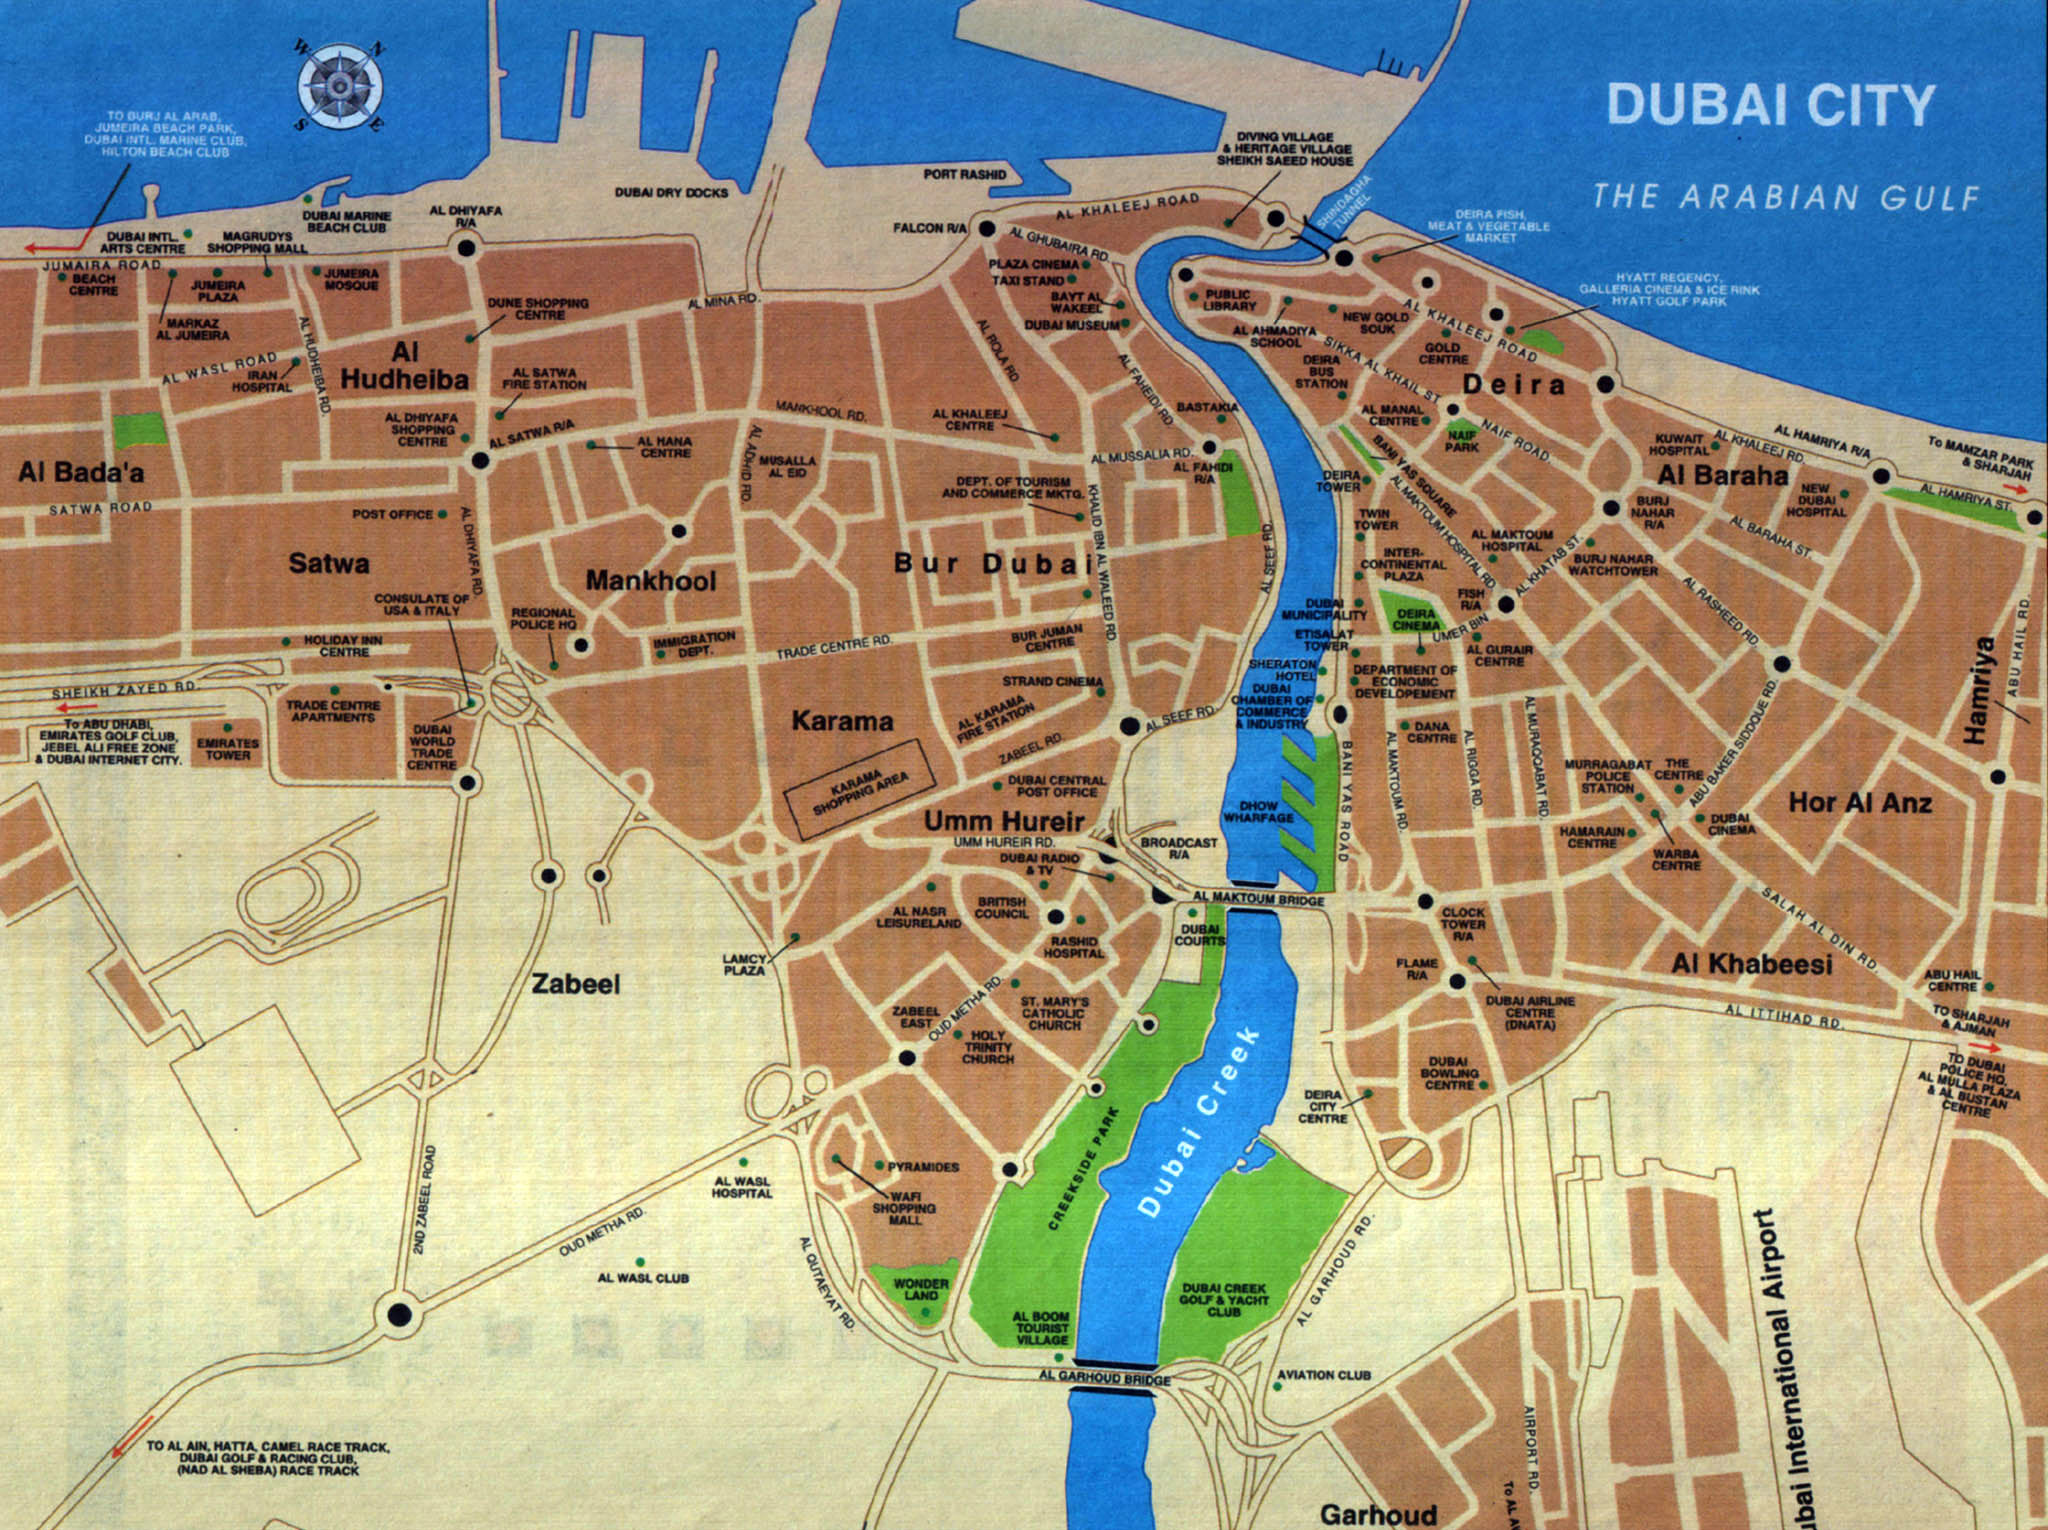 ramadah springs street dubai street map iphone download,dubai street map pdf,dubai street map itunes,google map dubai,Dubai City Street Road Maps,Street Map of Dubai City